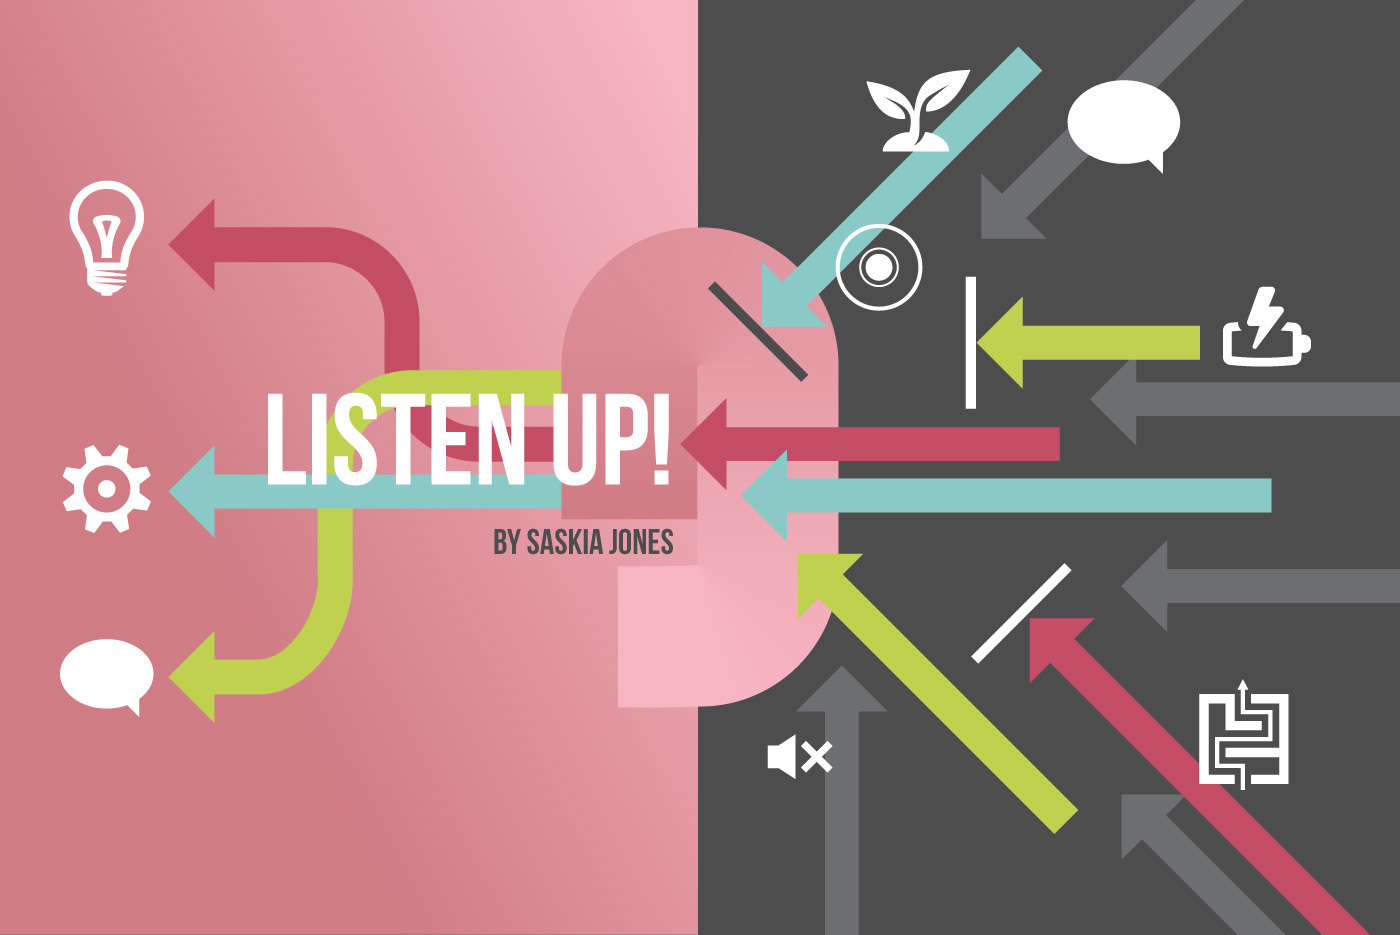 An ear surrounded by geometric arrows demonstrating the importance of listening in internal communications, accompanied by the text 'Listen Up! (by Saskia Jones)'